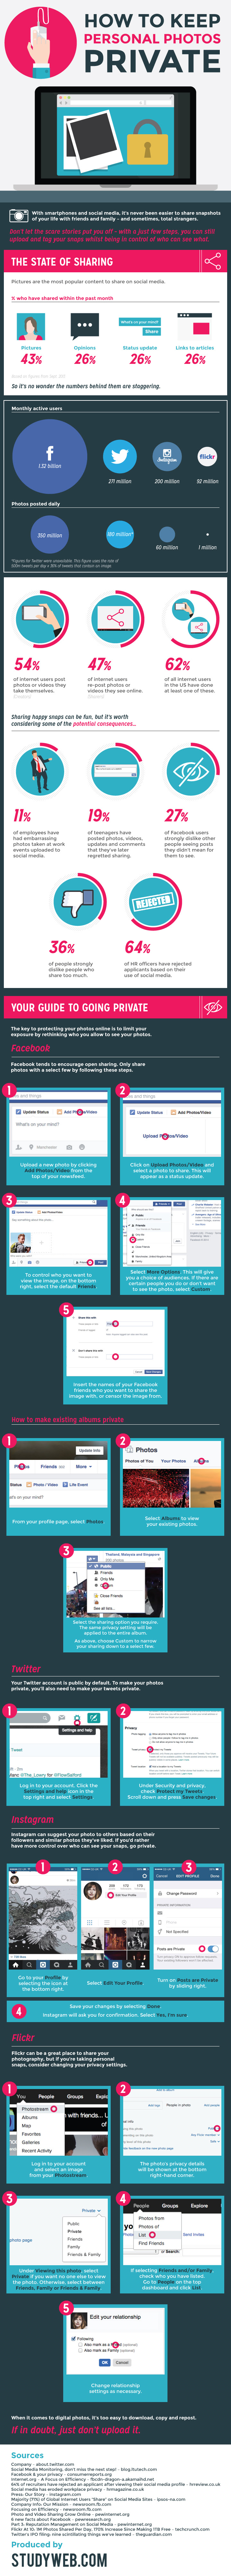 How to Change Photo Privacy Settings on Facebook, Twitter and Other Popular Social Networking Sites - #Infographic